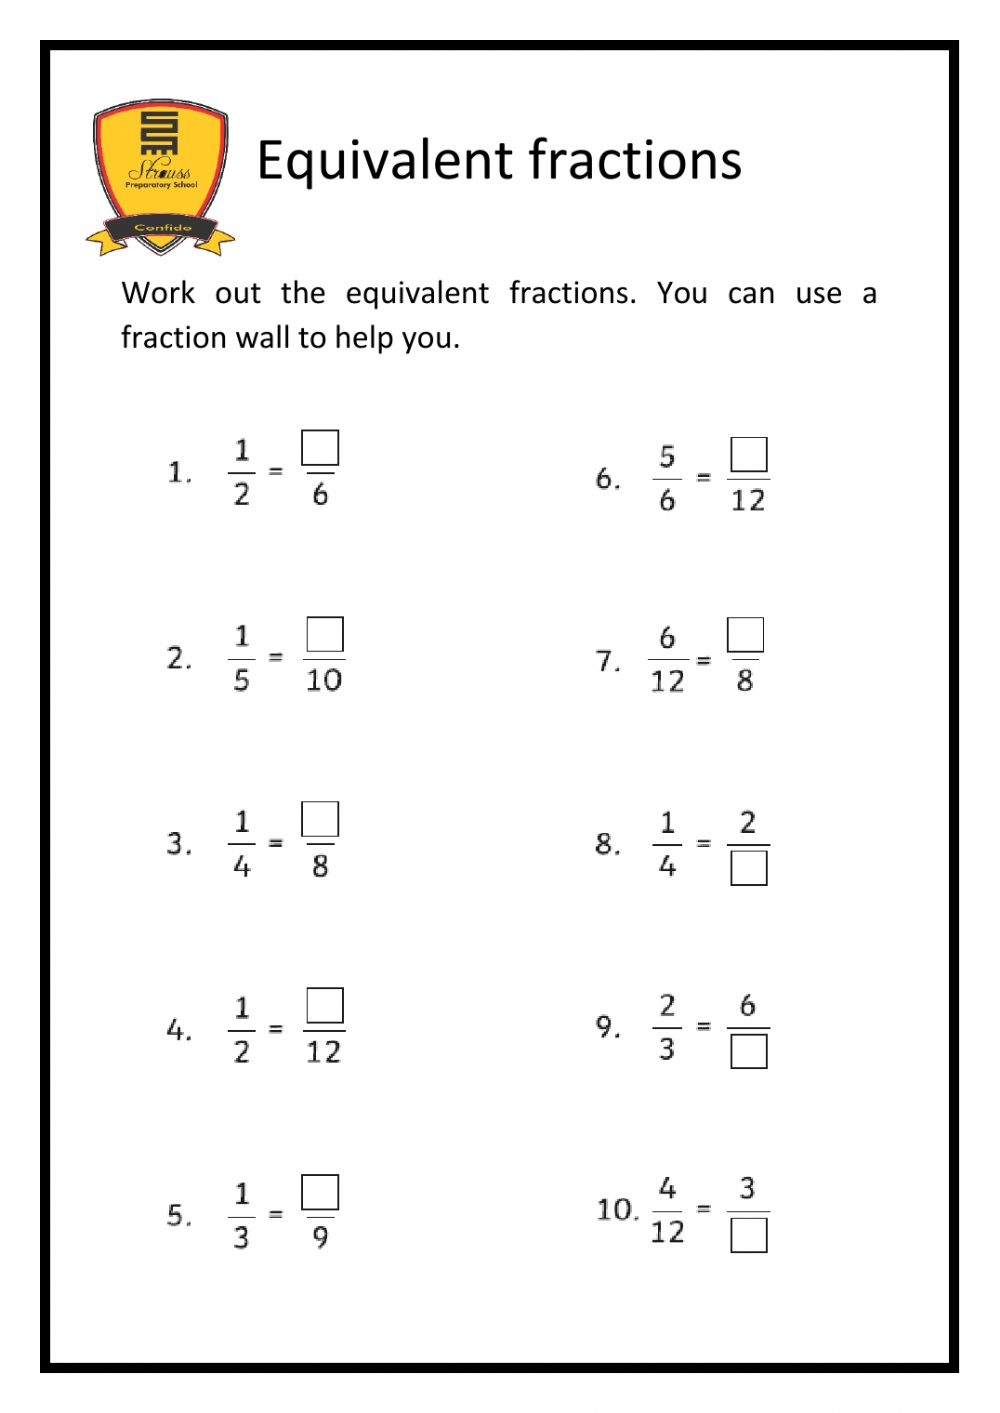 Equivalent Fractions interactive exercise